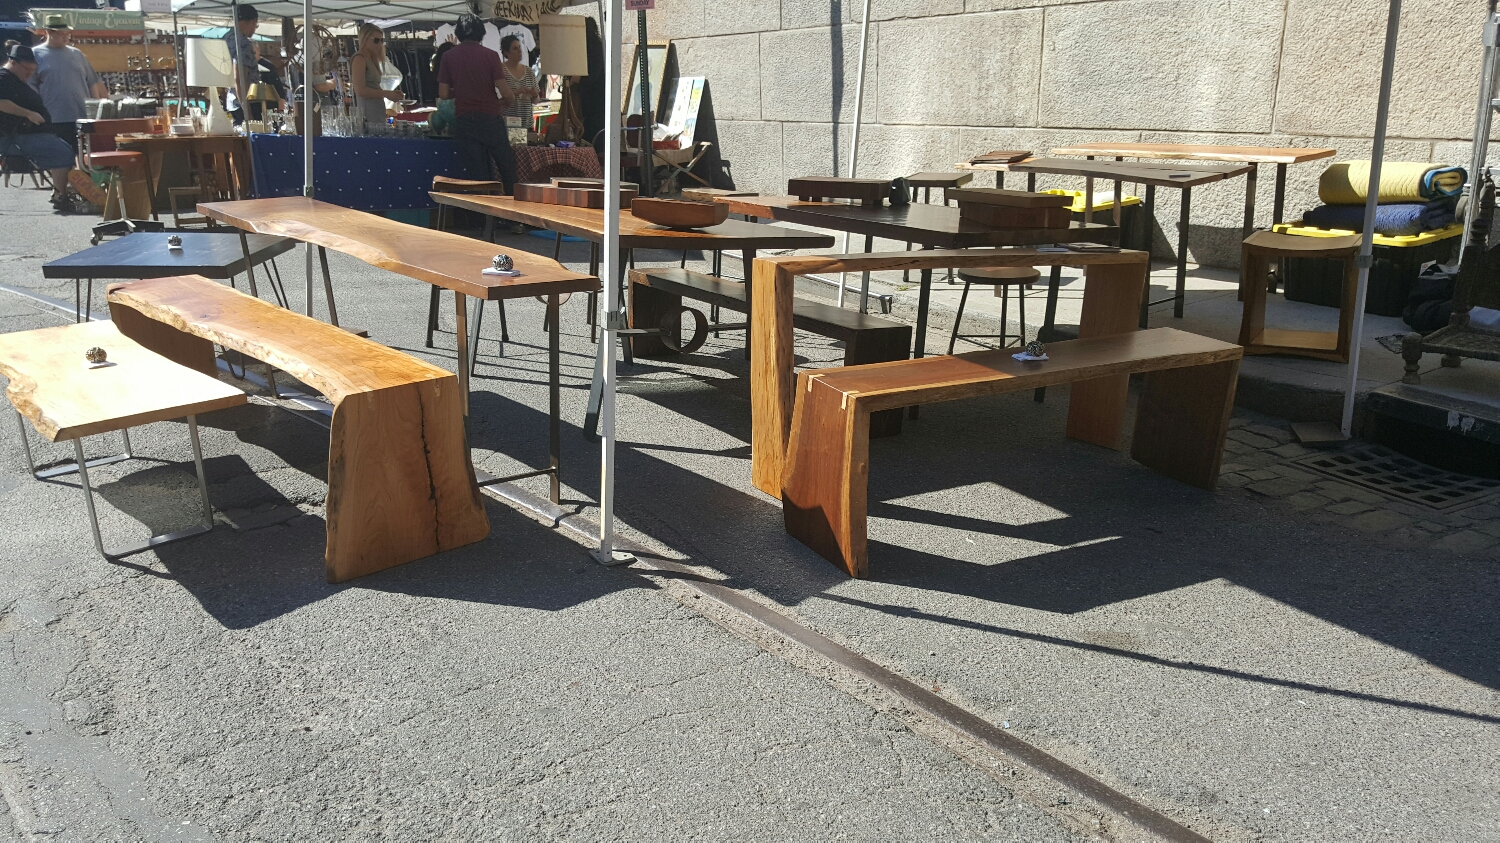 Come see our handcrafted tables, benches, stools, etc.